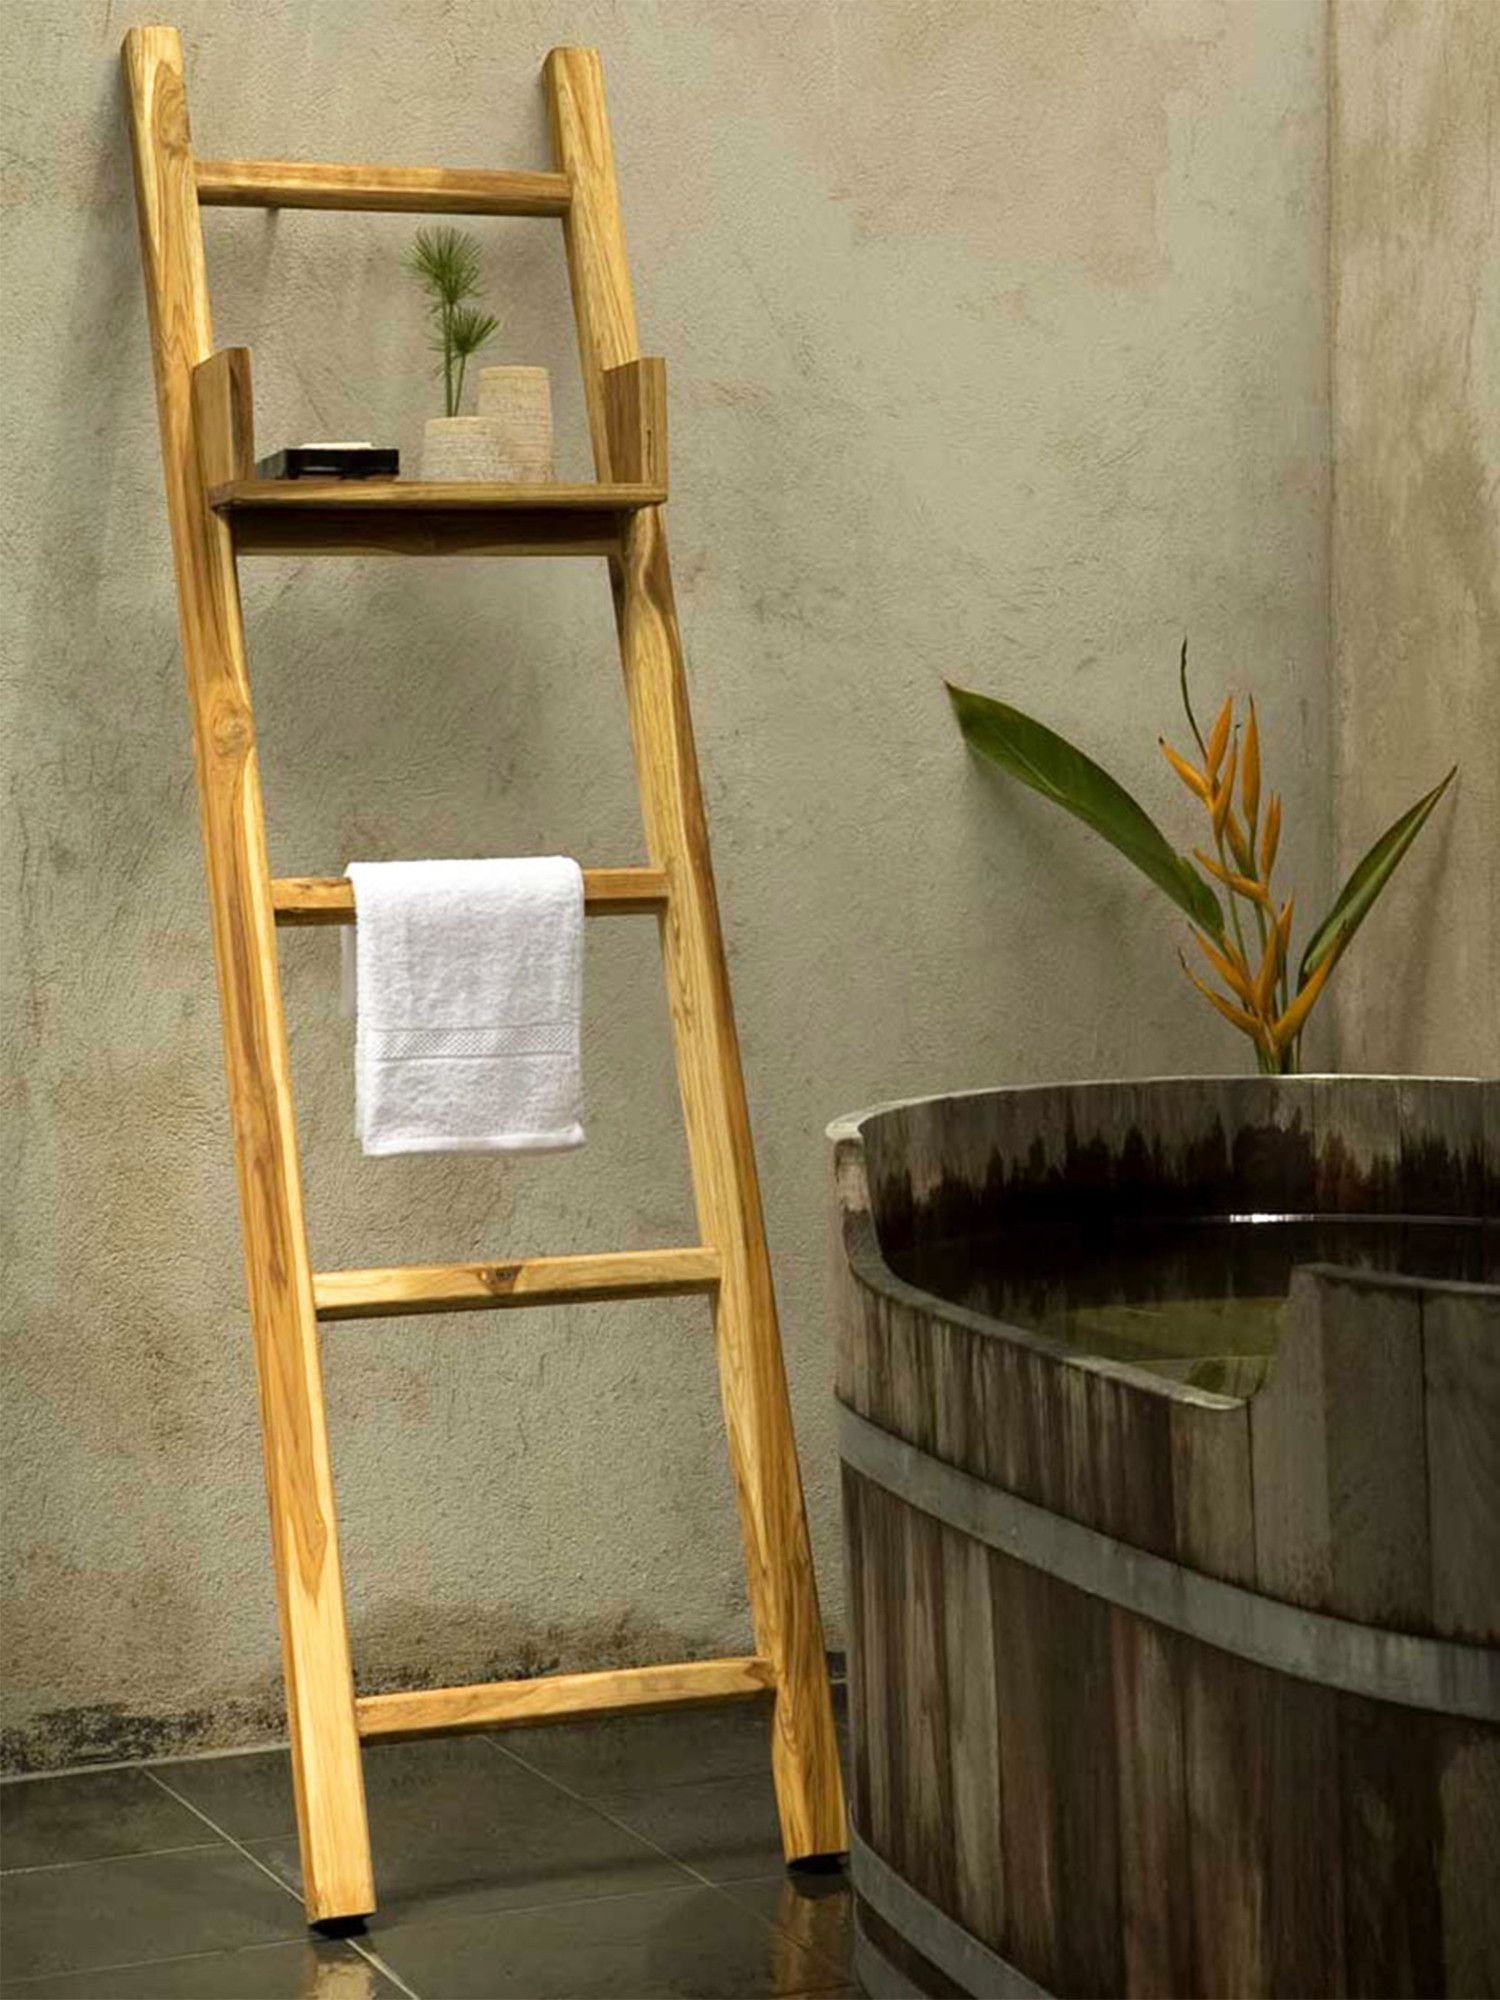 Handmade Teak Wood Free Standing Ladder Towel Ladder Ladder Decor Ladder Towel Racks